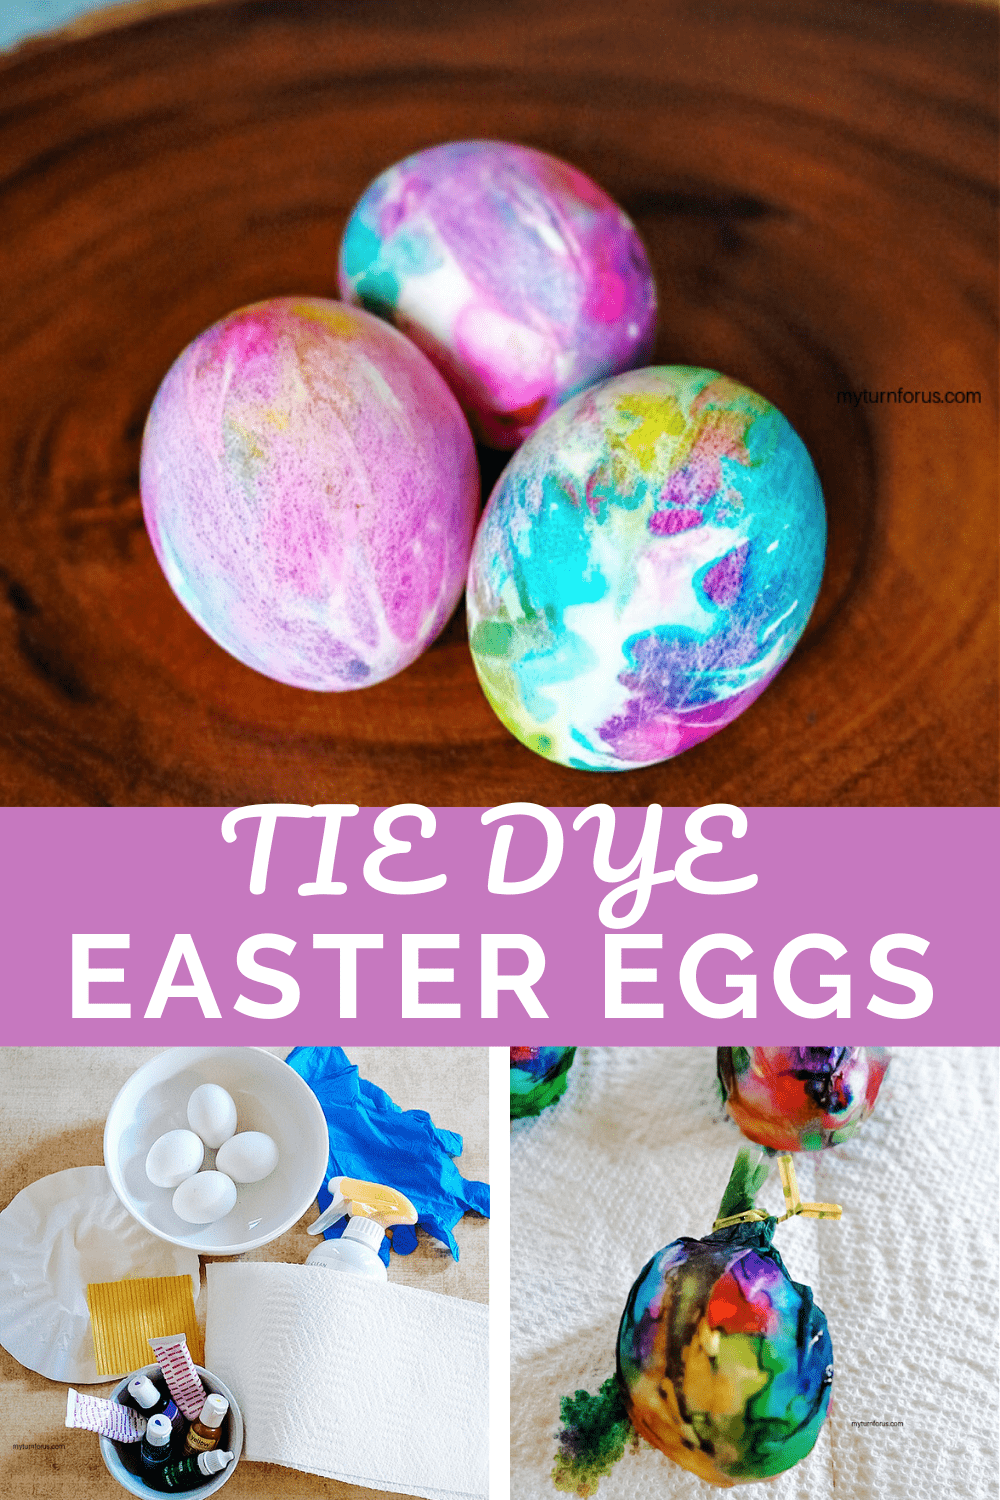 Tie Dye Easter Eggs Instructions